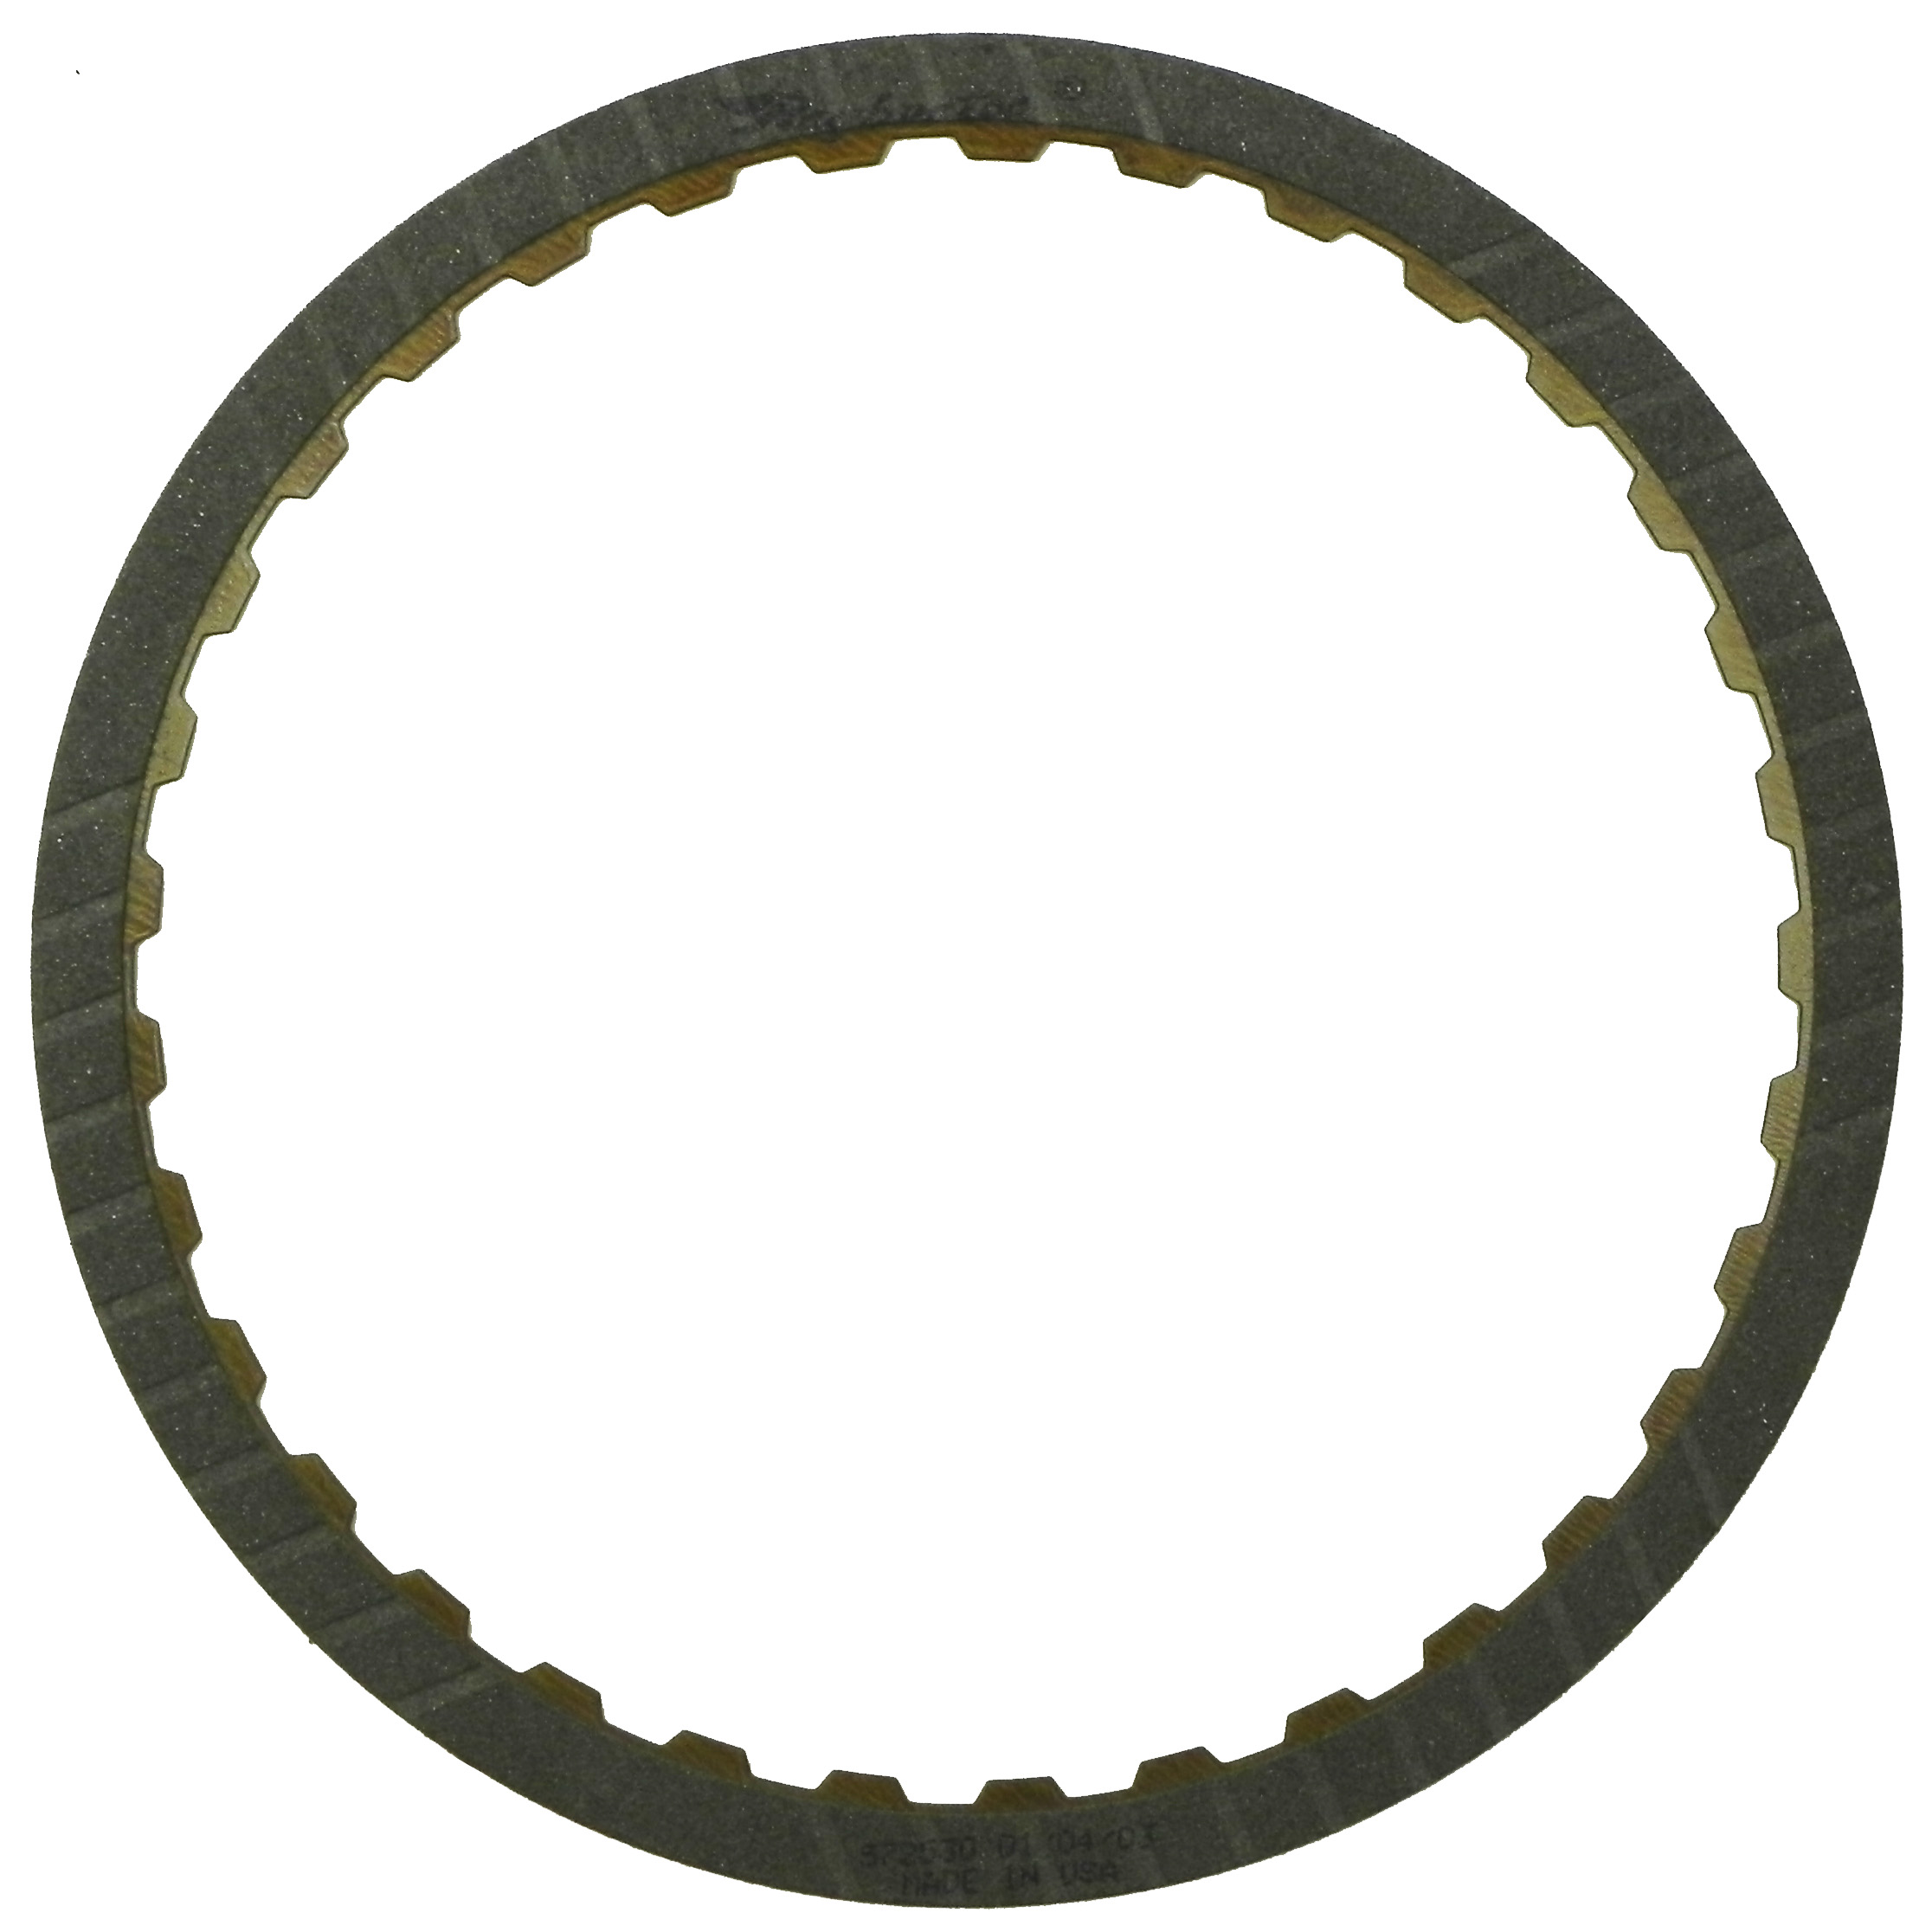 R572530 | 1989-1998 Friction Clutch Plate High Energy 2nd Brake High Energy AW50-40LE